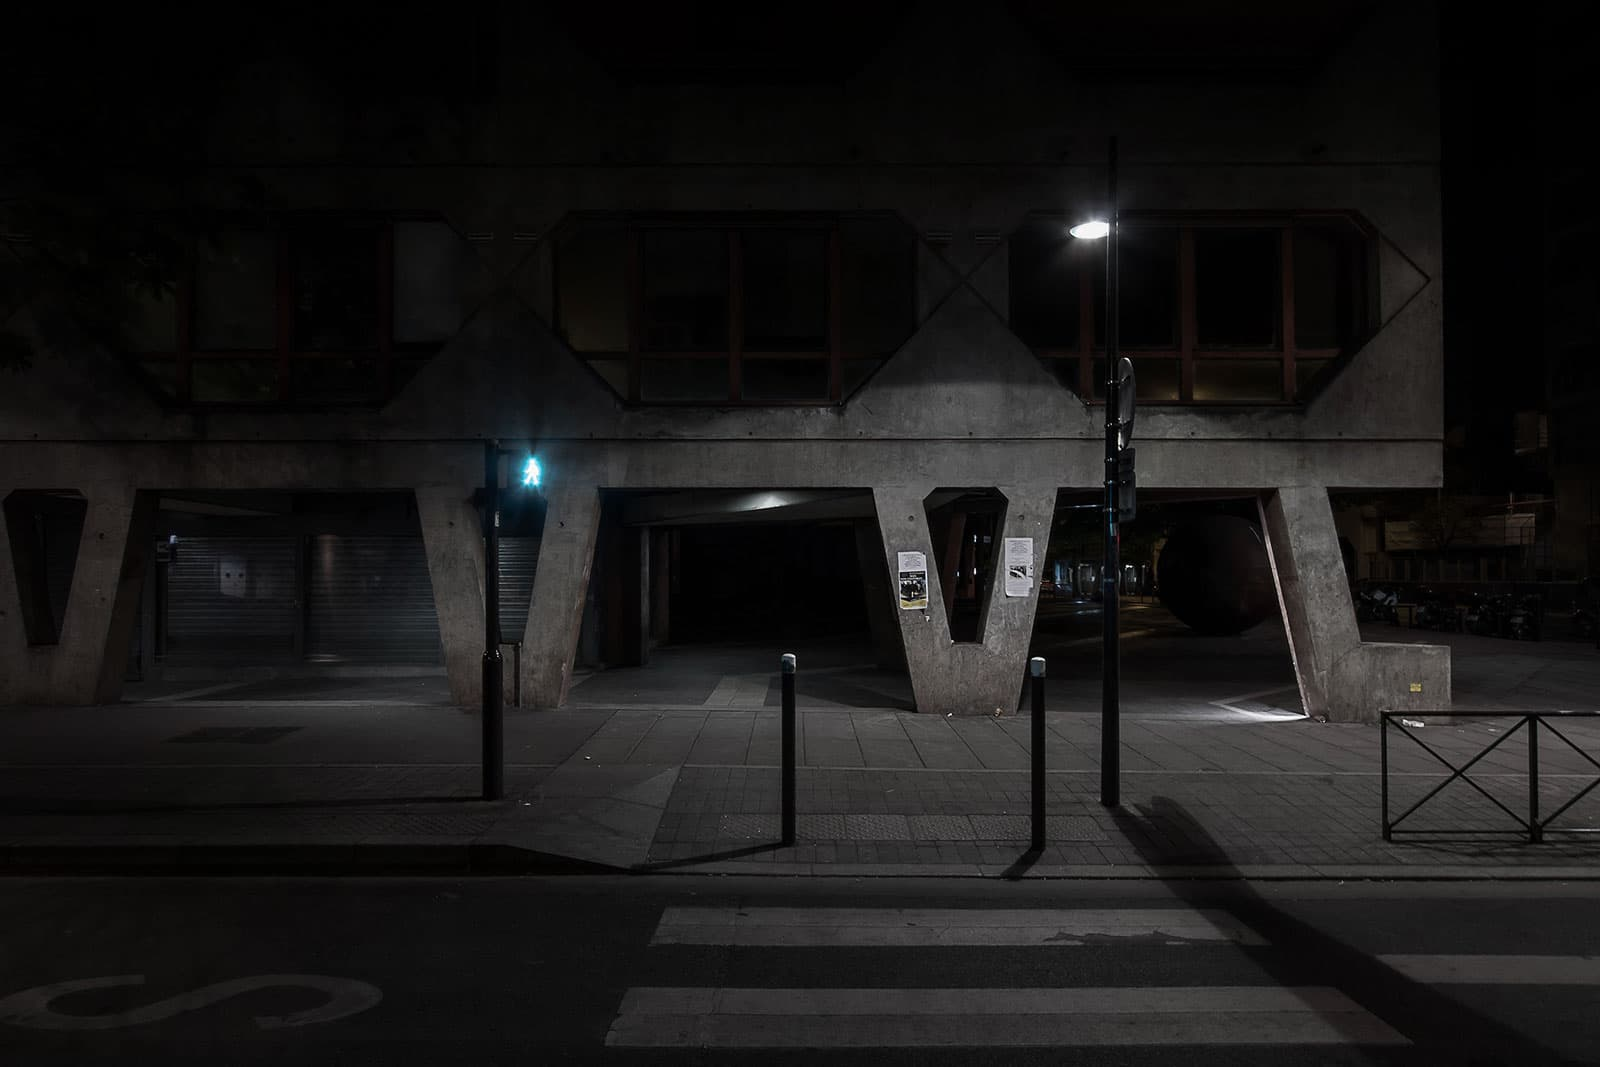 Outside the bunker - photographie urbaine de nuit